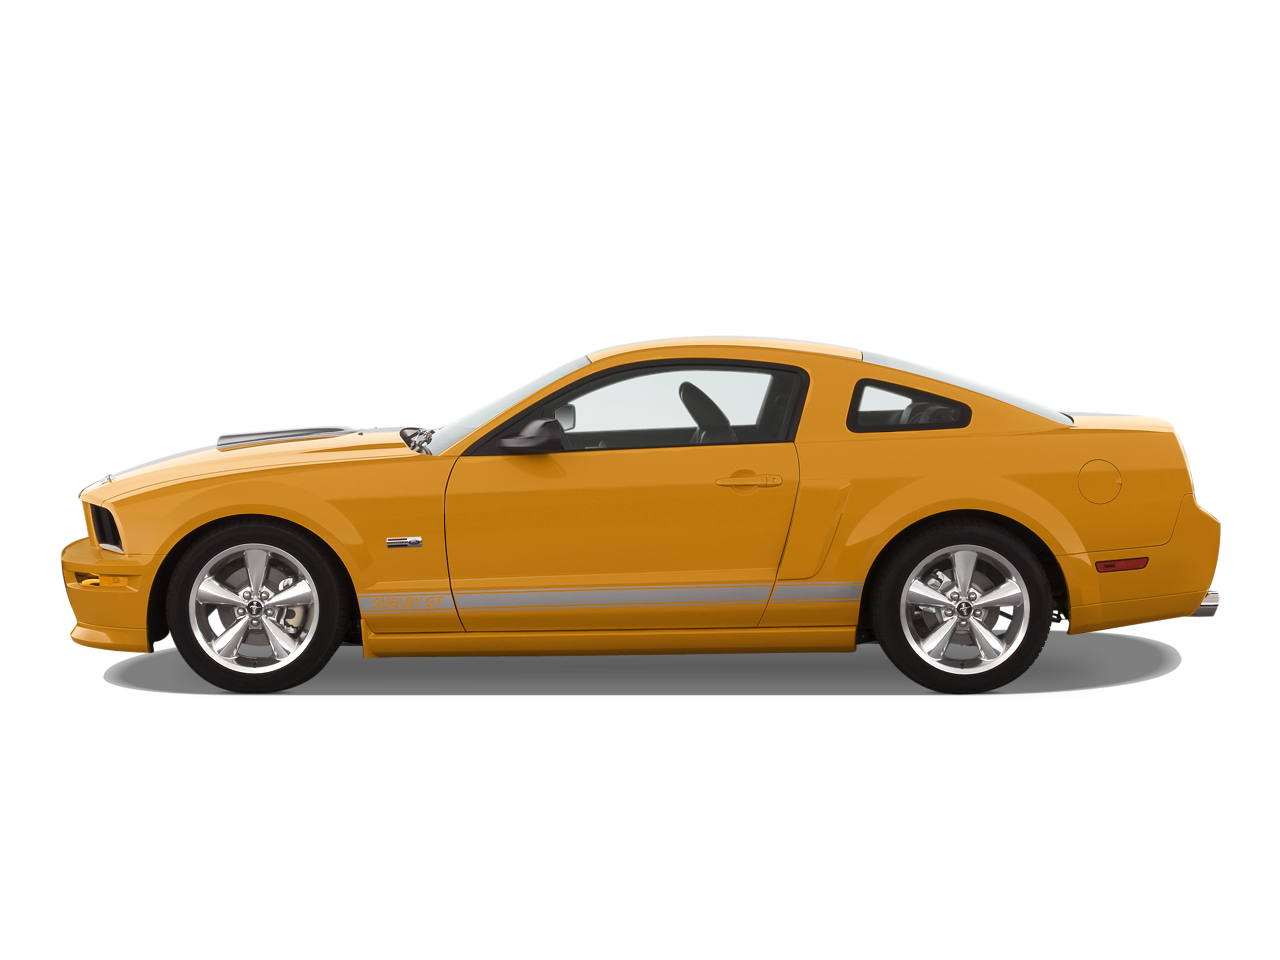 http://st.automobilemag.com/uploads/sites/10/2015/11/2008-ford-mustang-shelby-gt500-coupe-side-view.png